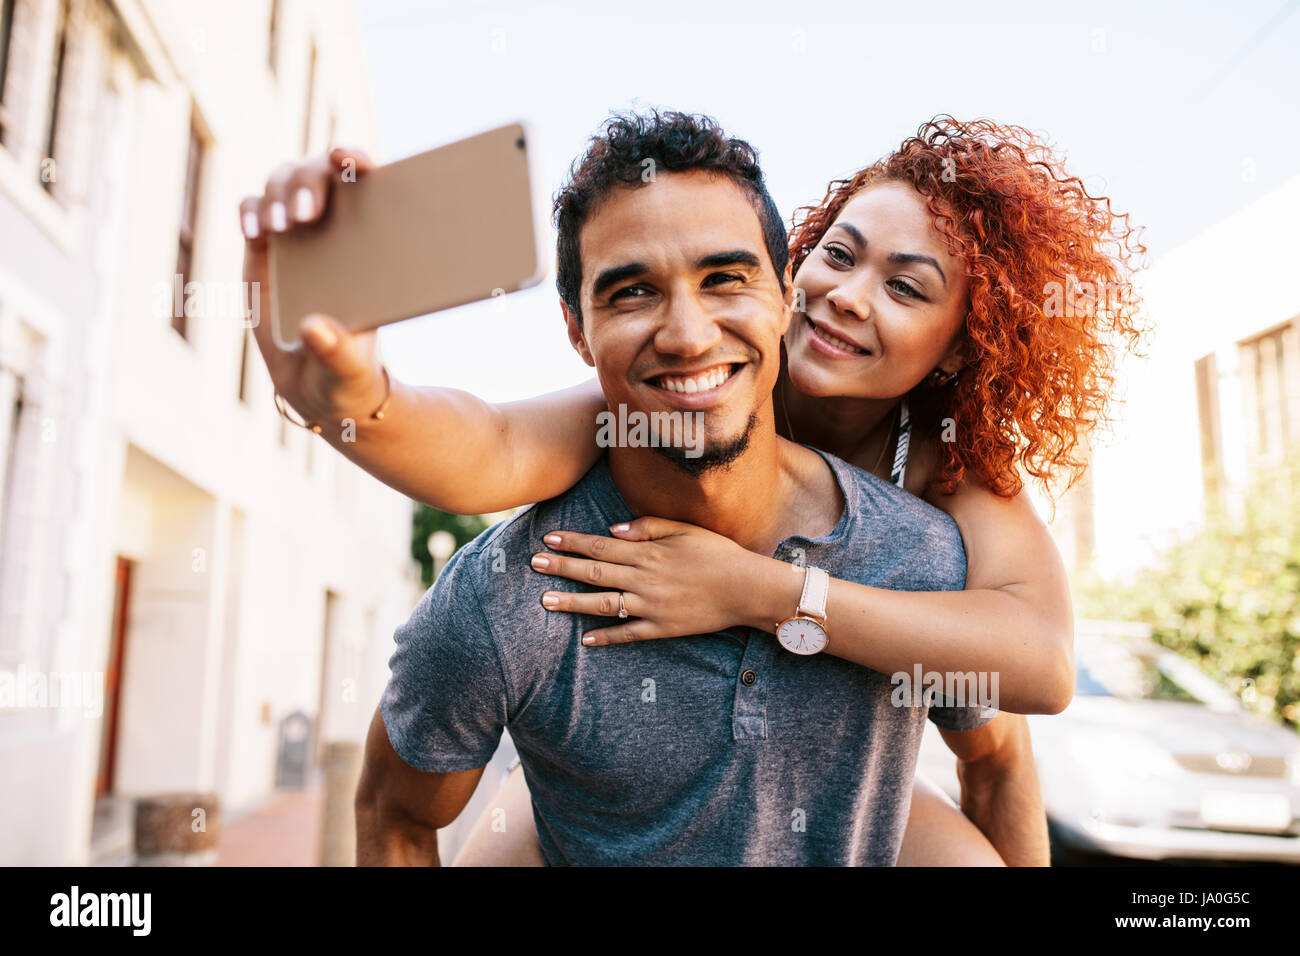 Smiling young woman riding piggy back on her partner while taking a selfie with her smartphone. Young man carrying - Stock Image